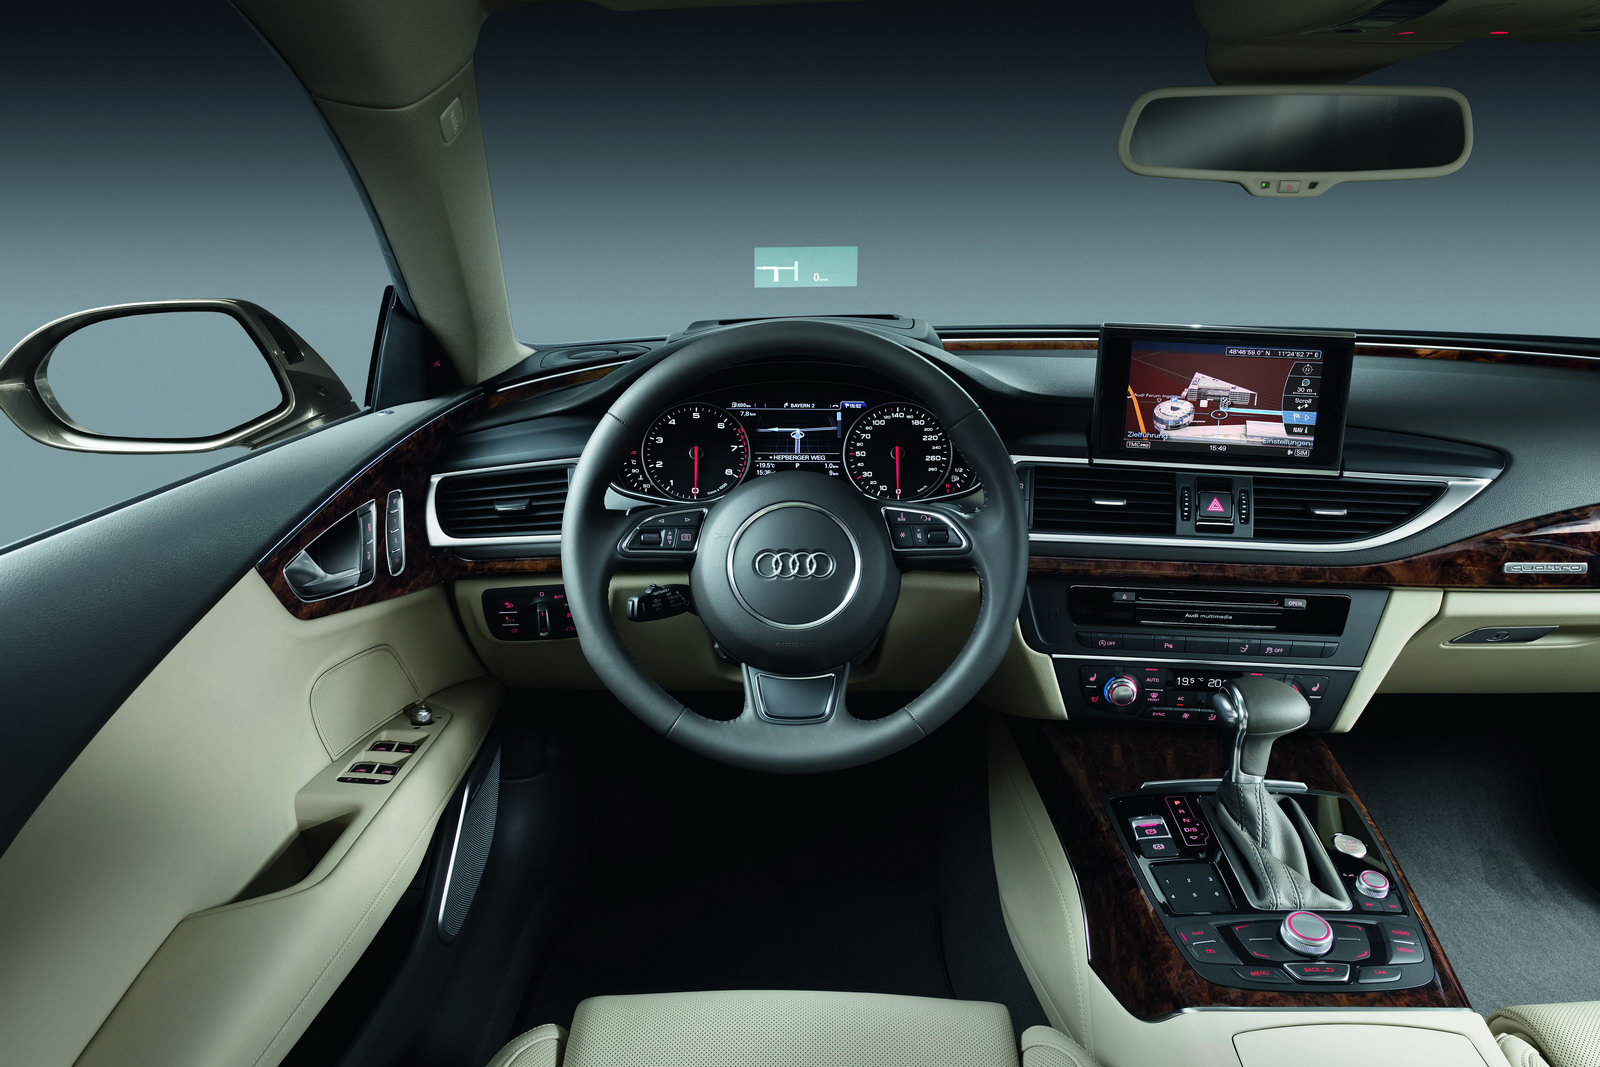 2011 Audi A7 Sportback Official Details and Photos ...